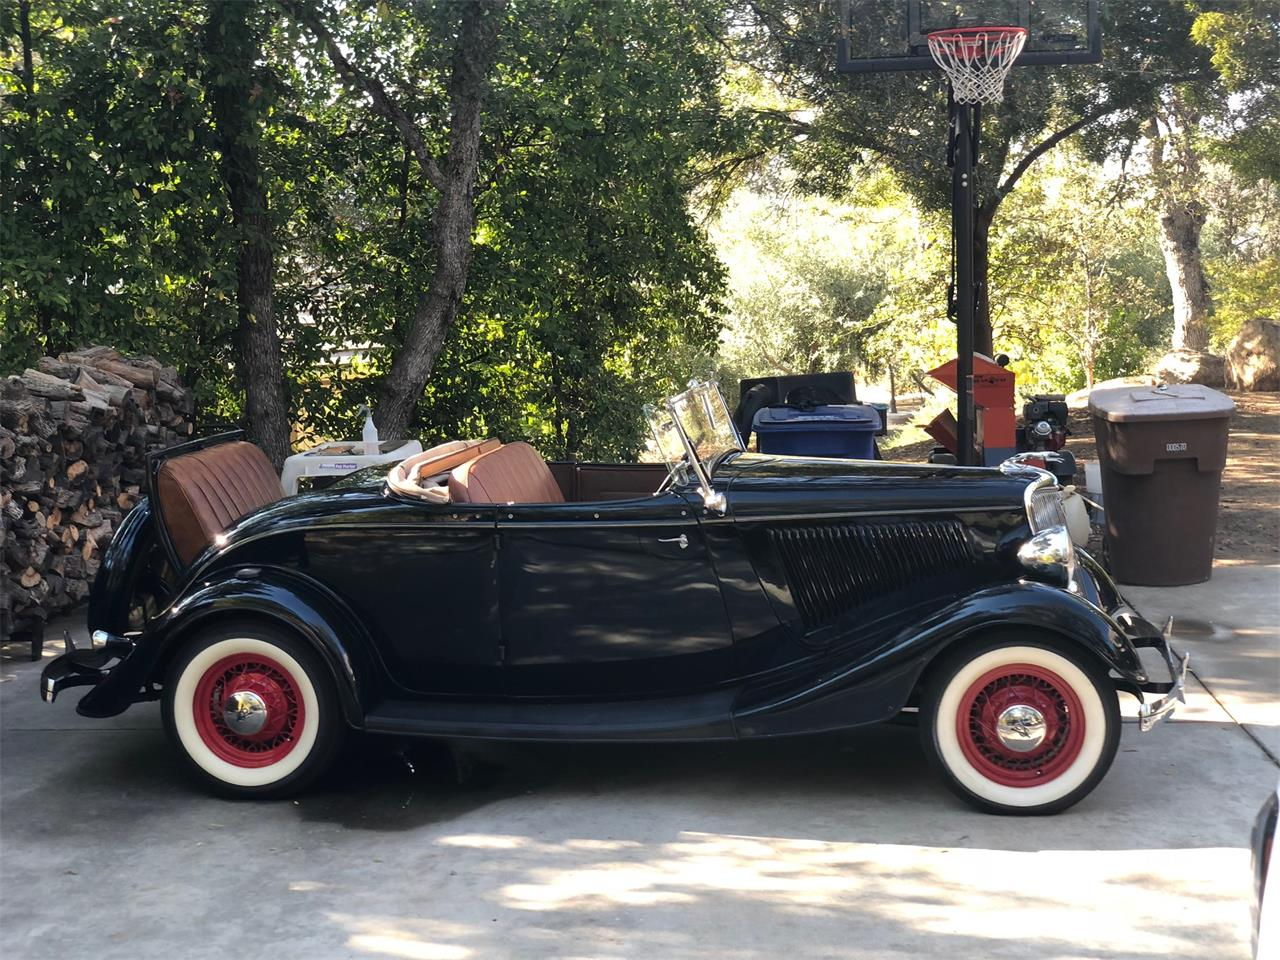 Large Picture of Classic '34 Ford Roadster located in Three Rivers California - $60,000.00 - OWMB